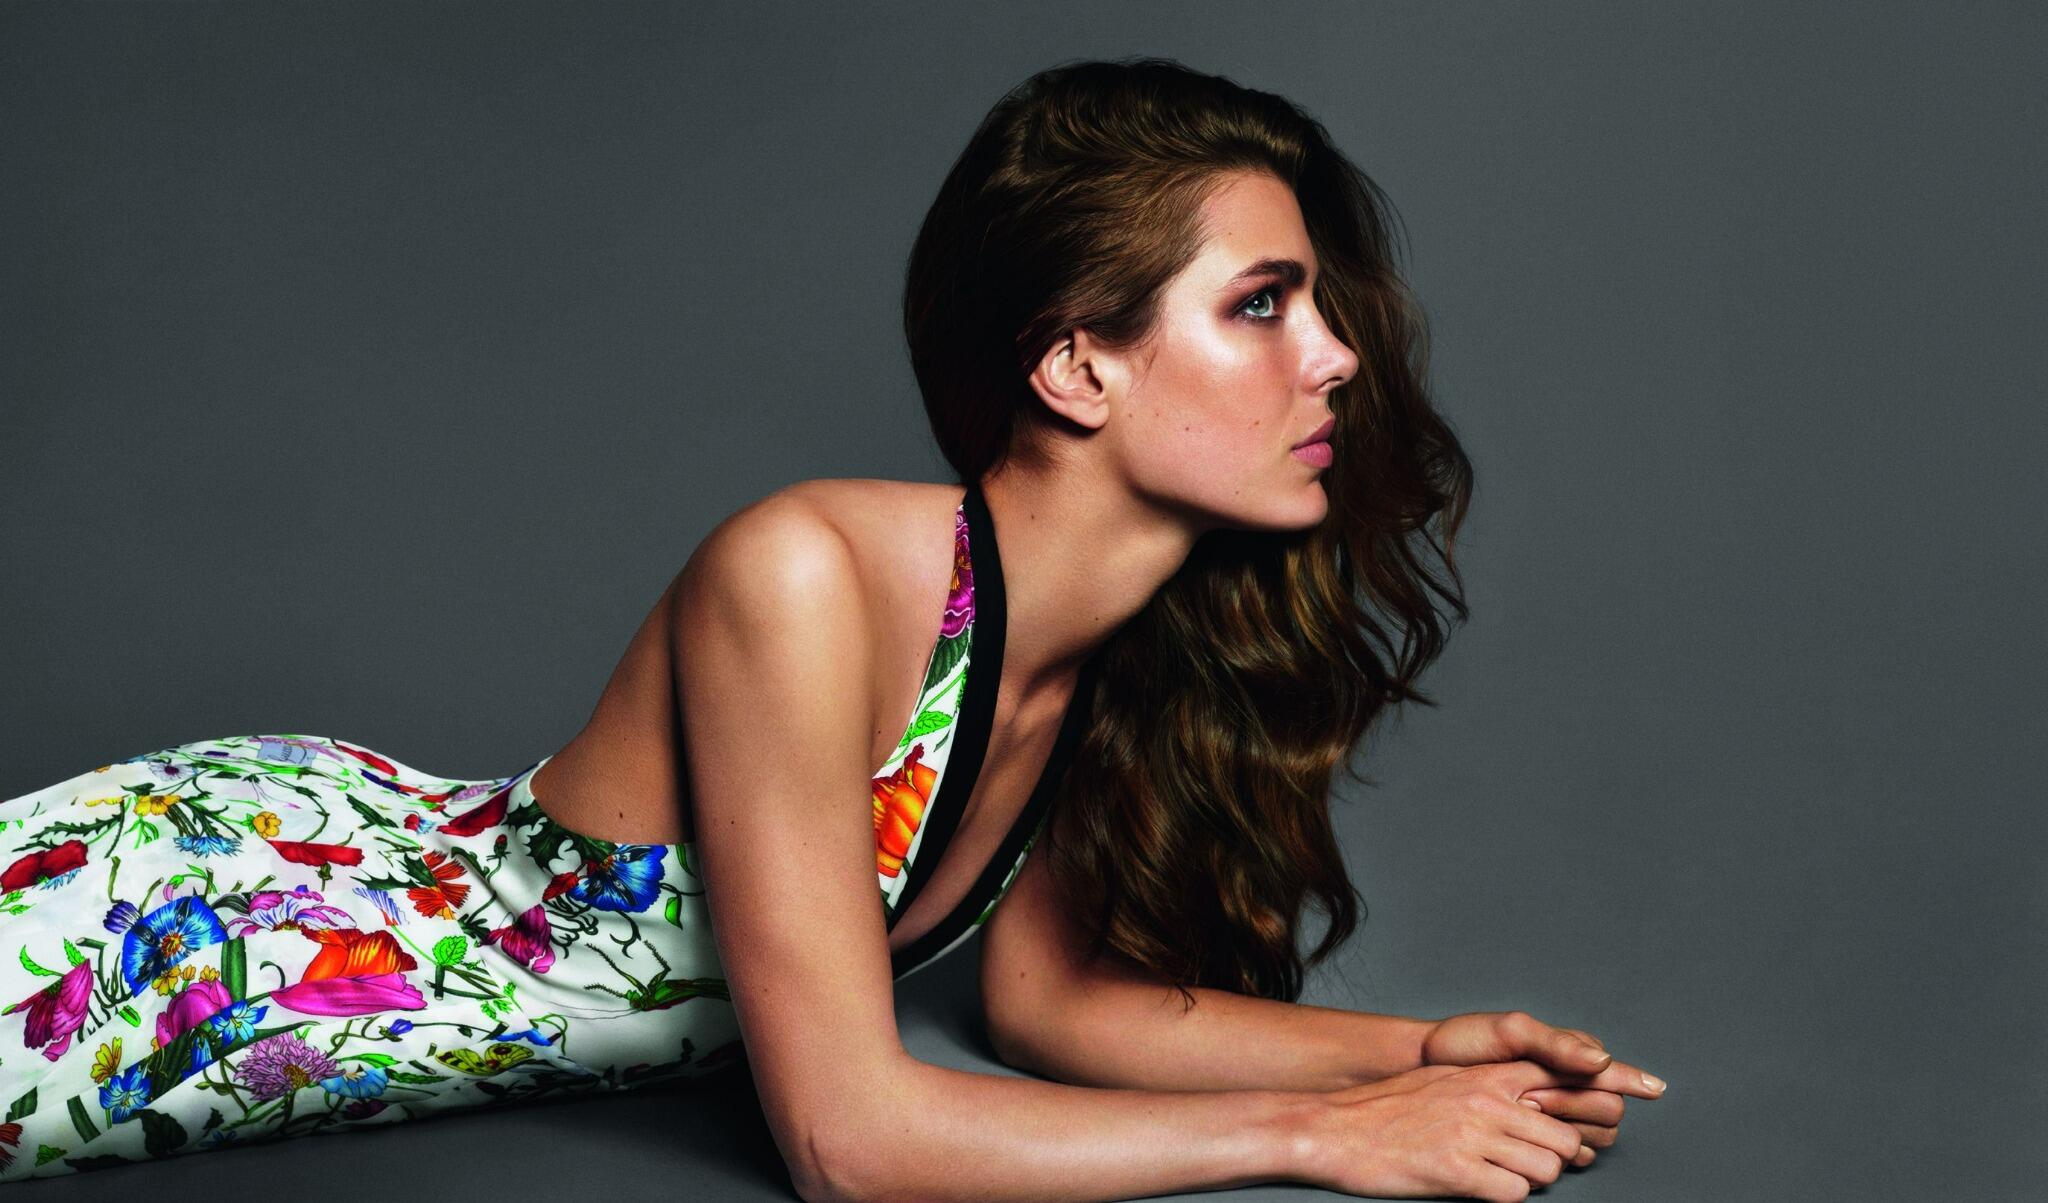 Twitter / gucci: Charlotte Casiraghi is a vision ...